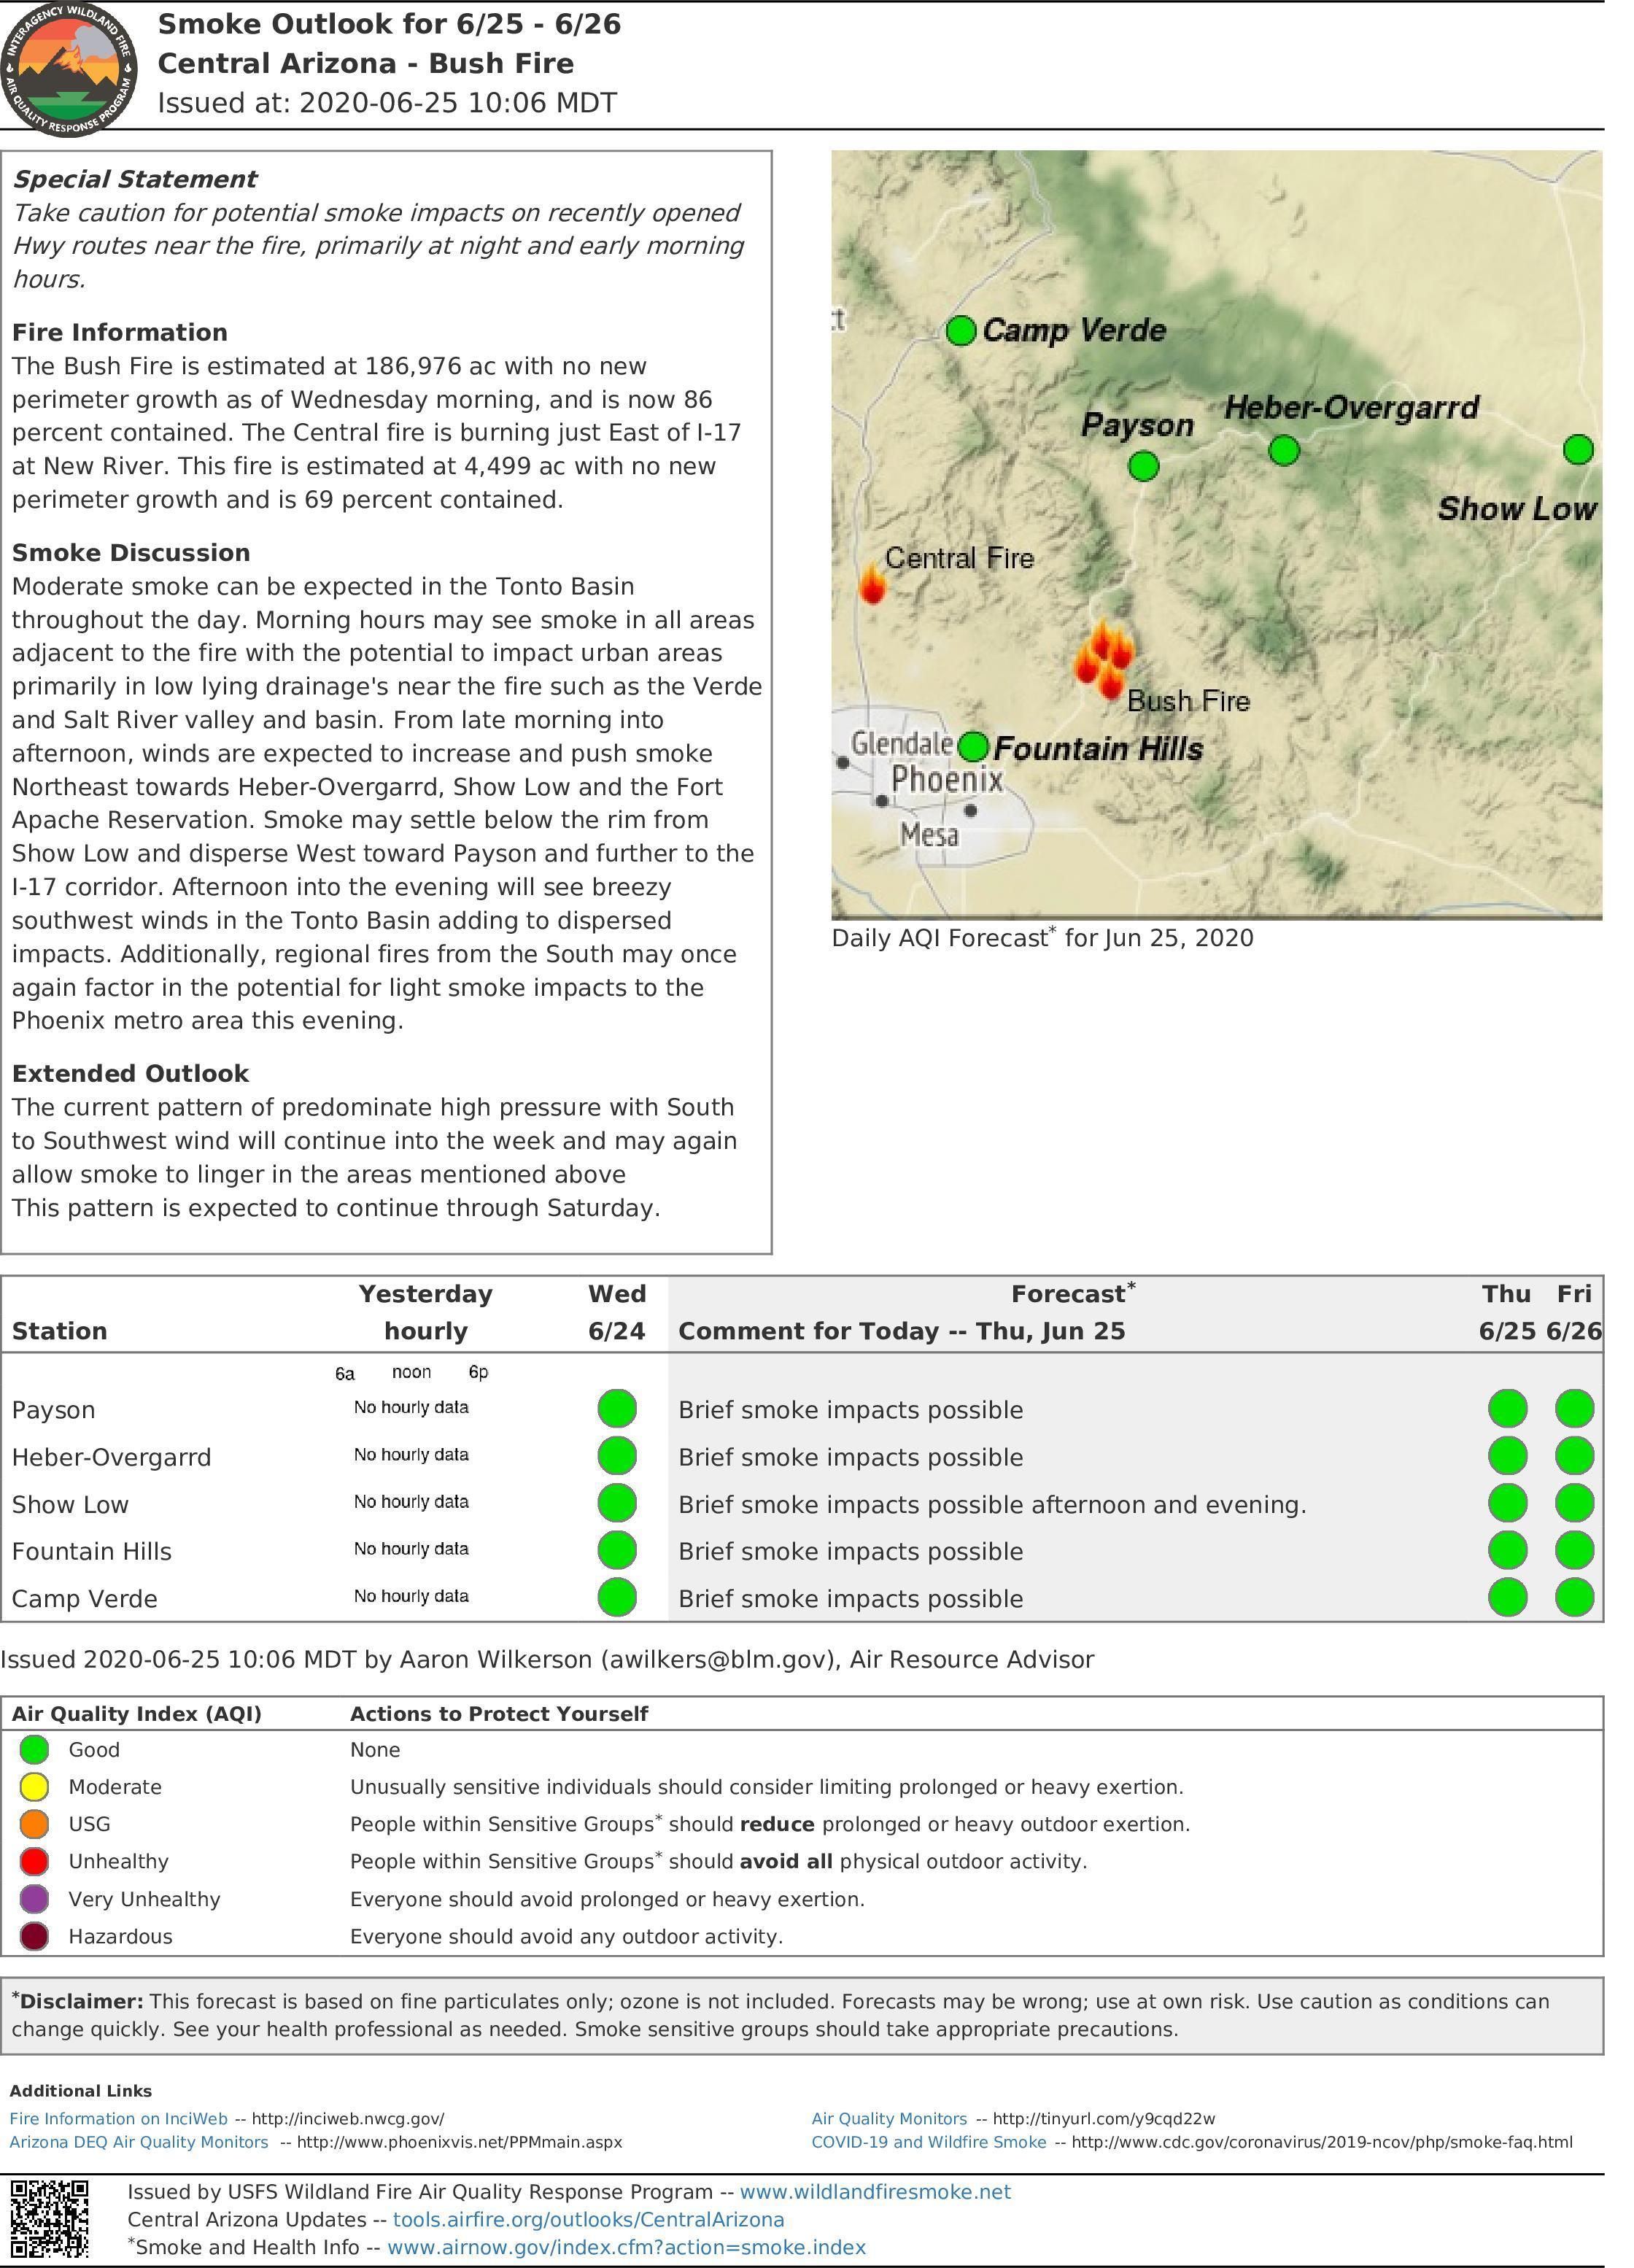 Smoke Outlook Map for 6-25 & 6-26 - full report is available under the Annoucement tab on this page.